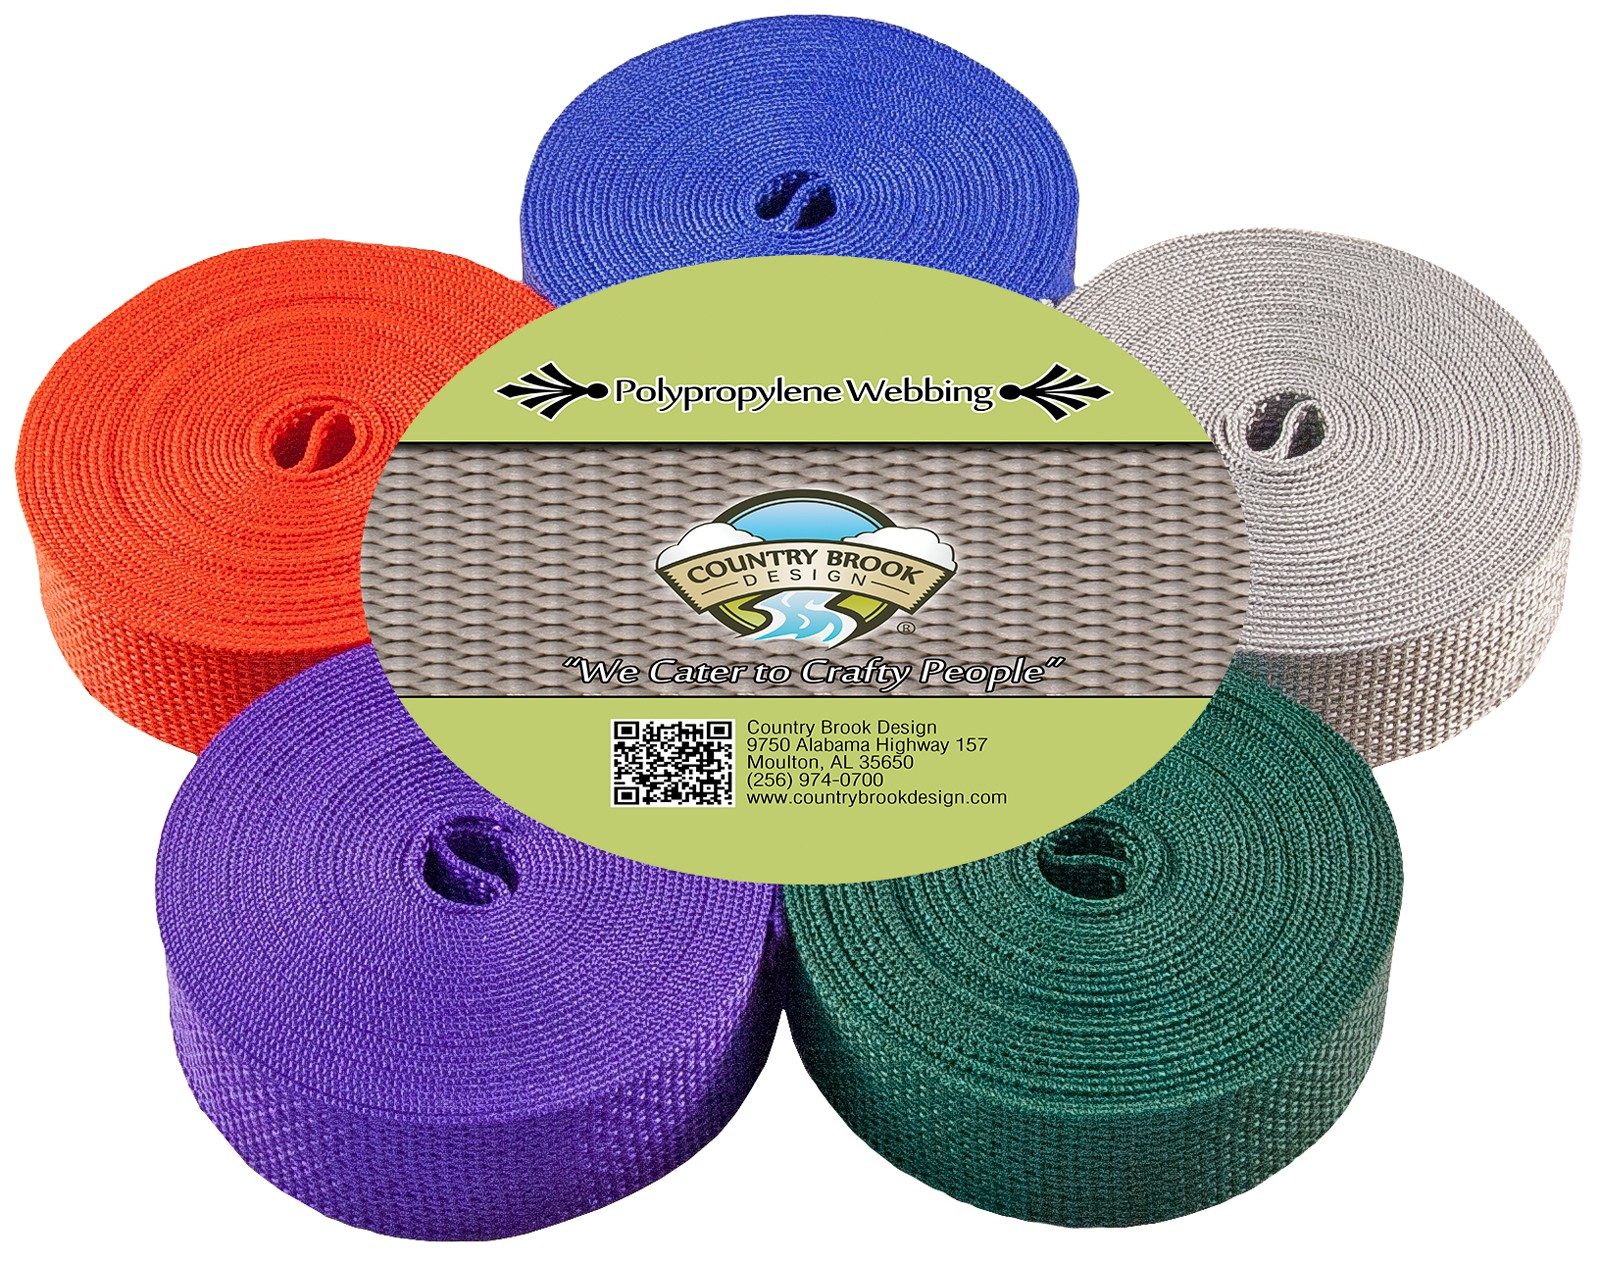 10 Yards Country Brook Design® 1 Inch Turquoise Polypro Webbing